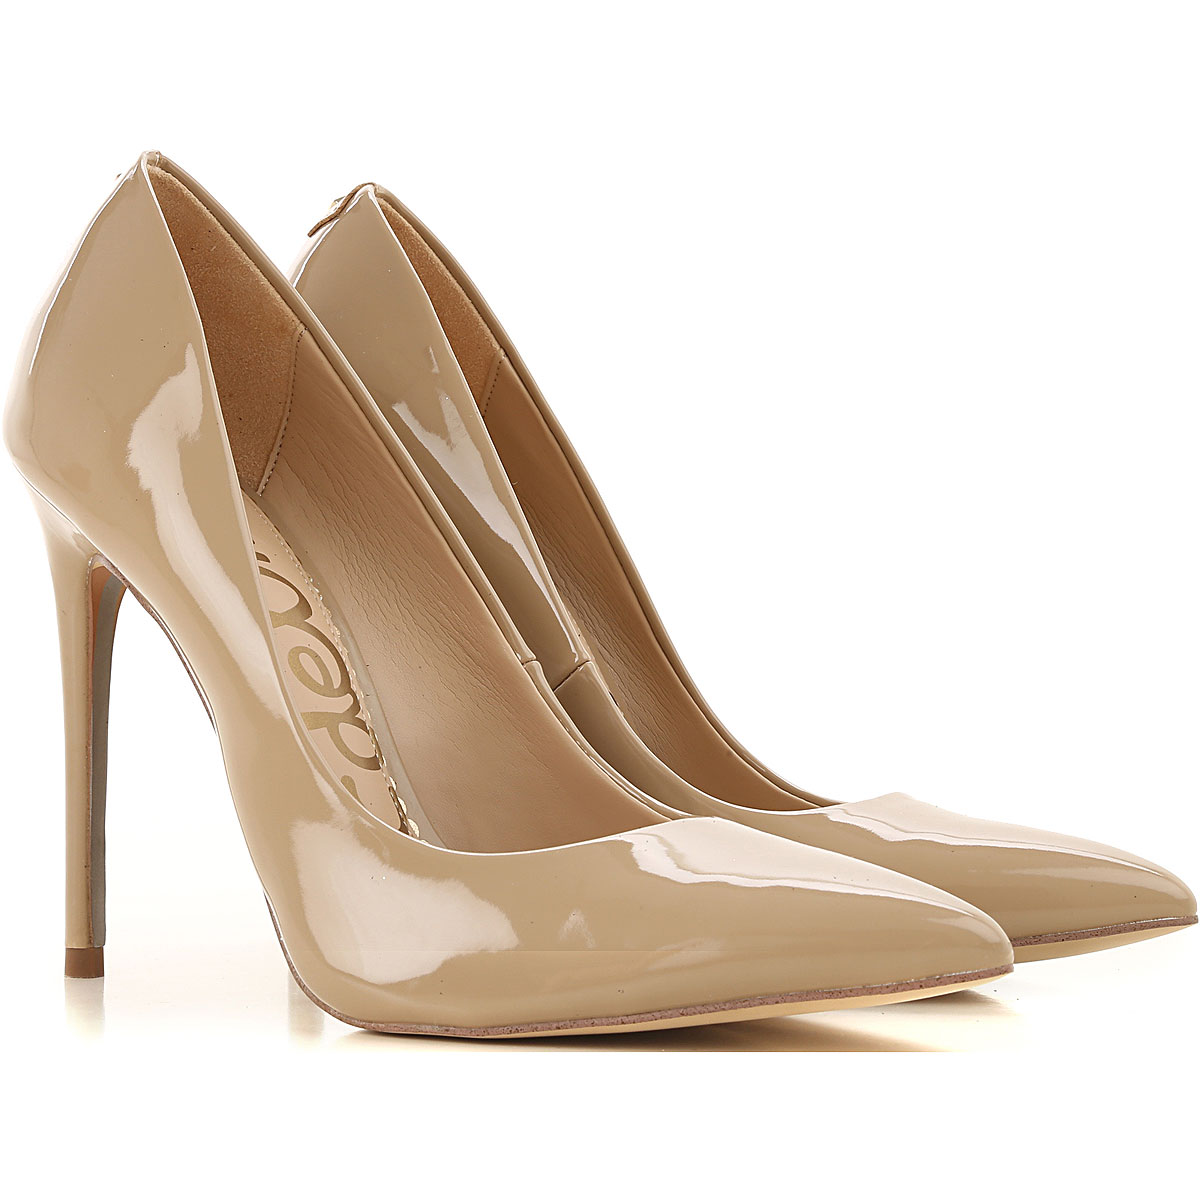 Sam Edelman Pumps & High Heels for Women On Sale, Nude, Patent Leather, 2019, 10 8 9.5